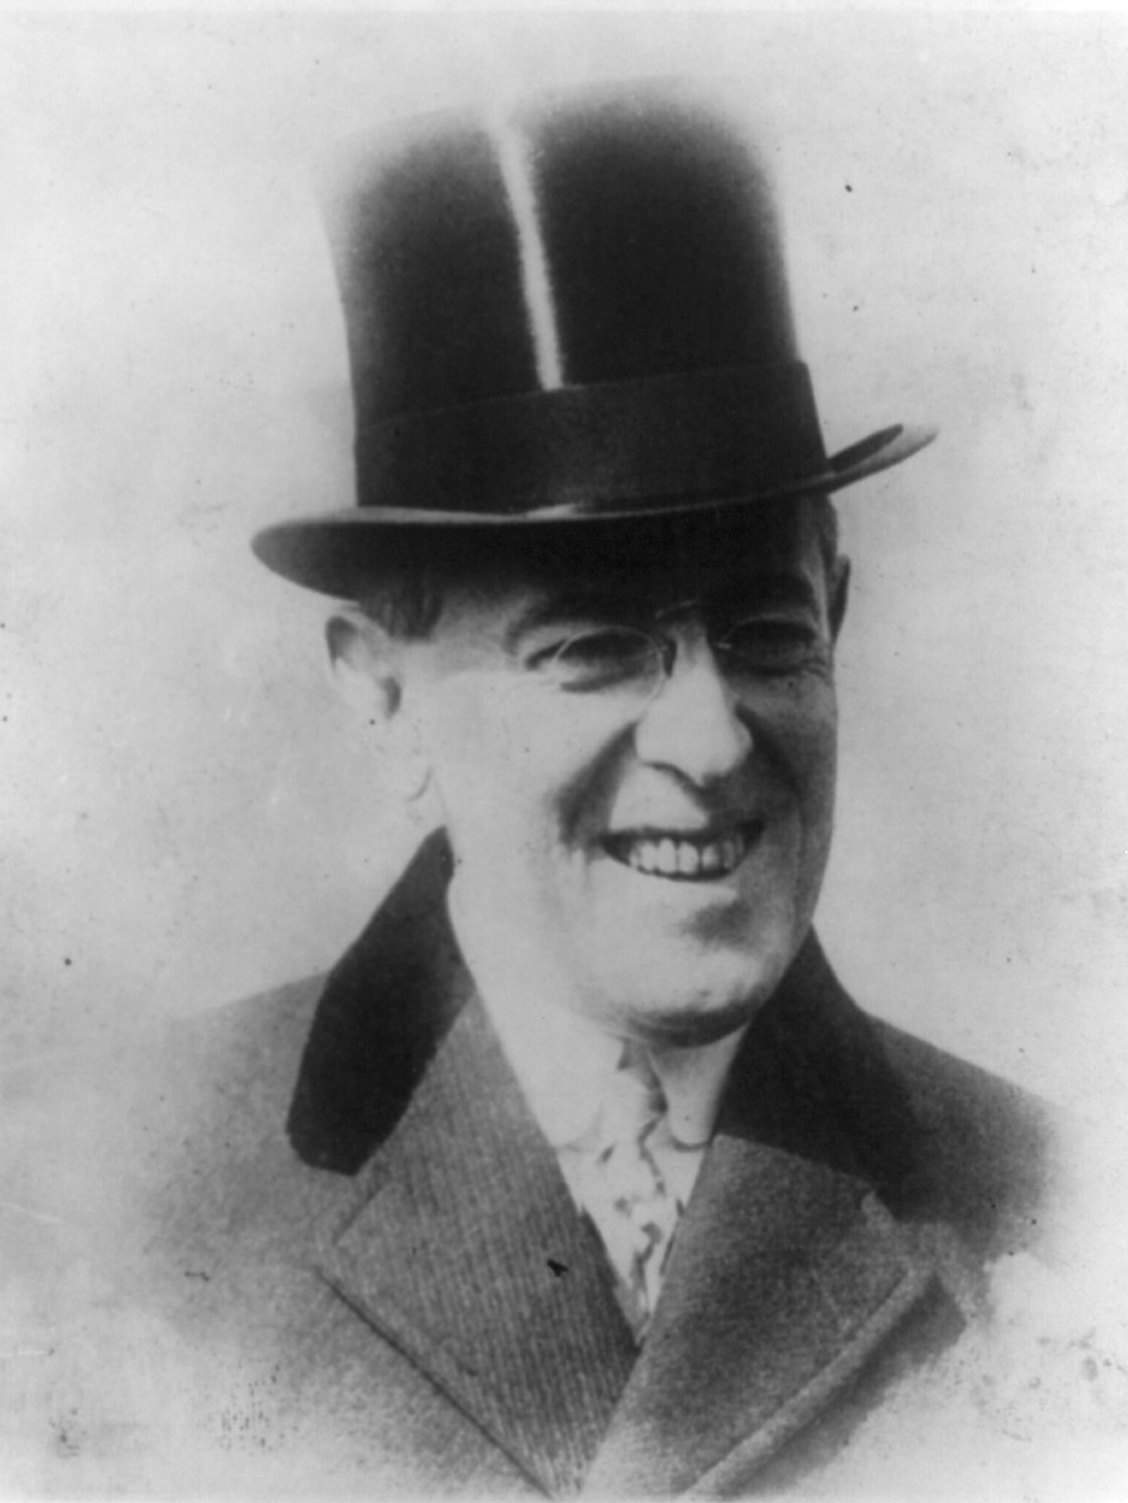 woodrow wilson The influence of president woodrow wilson on american foreign policy has been profound and lasting.